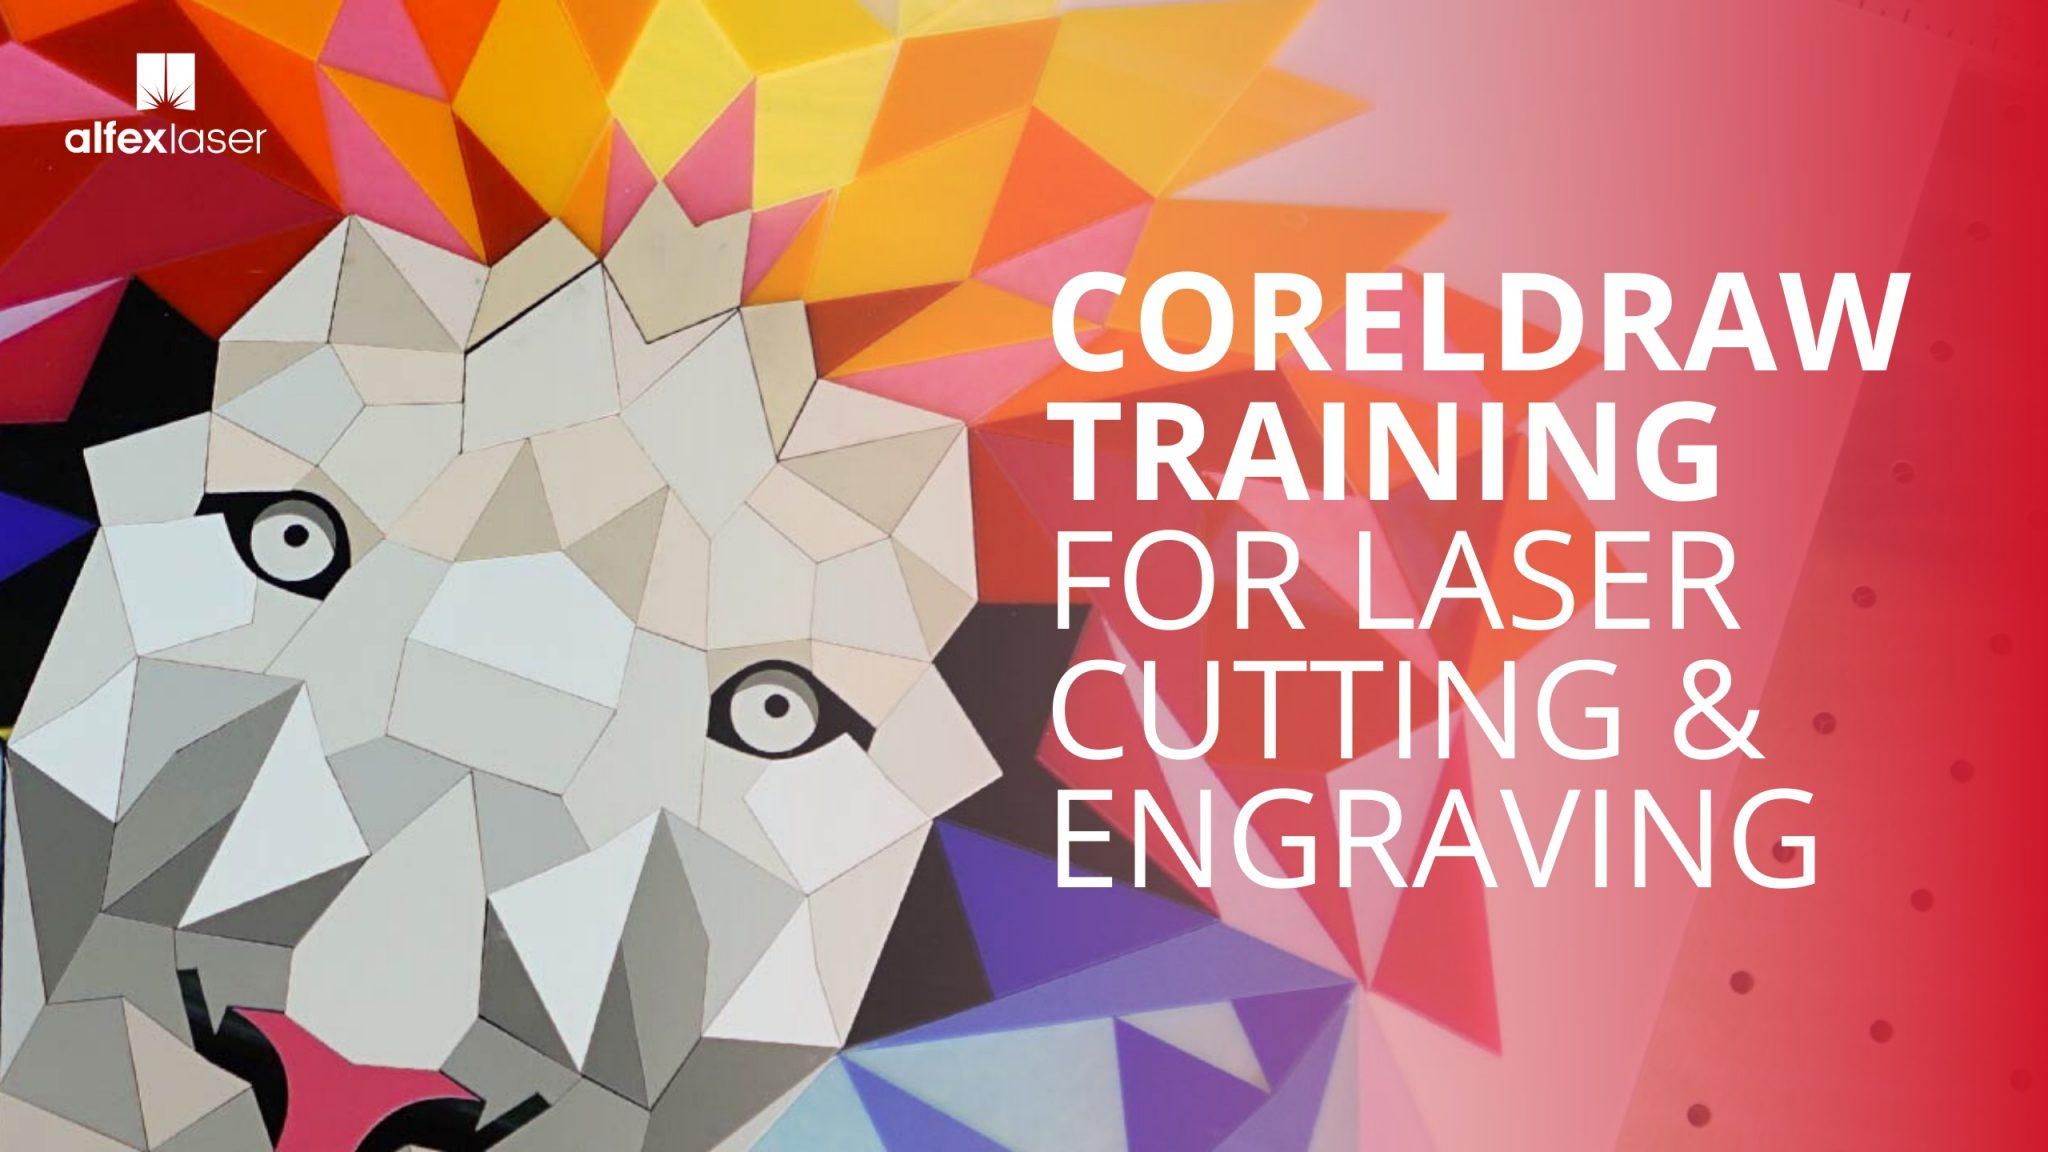 CorelDRAW Training Classes